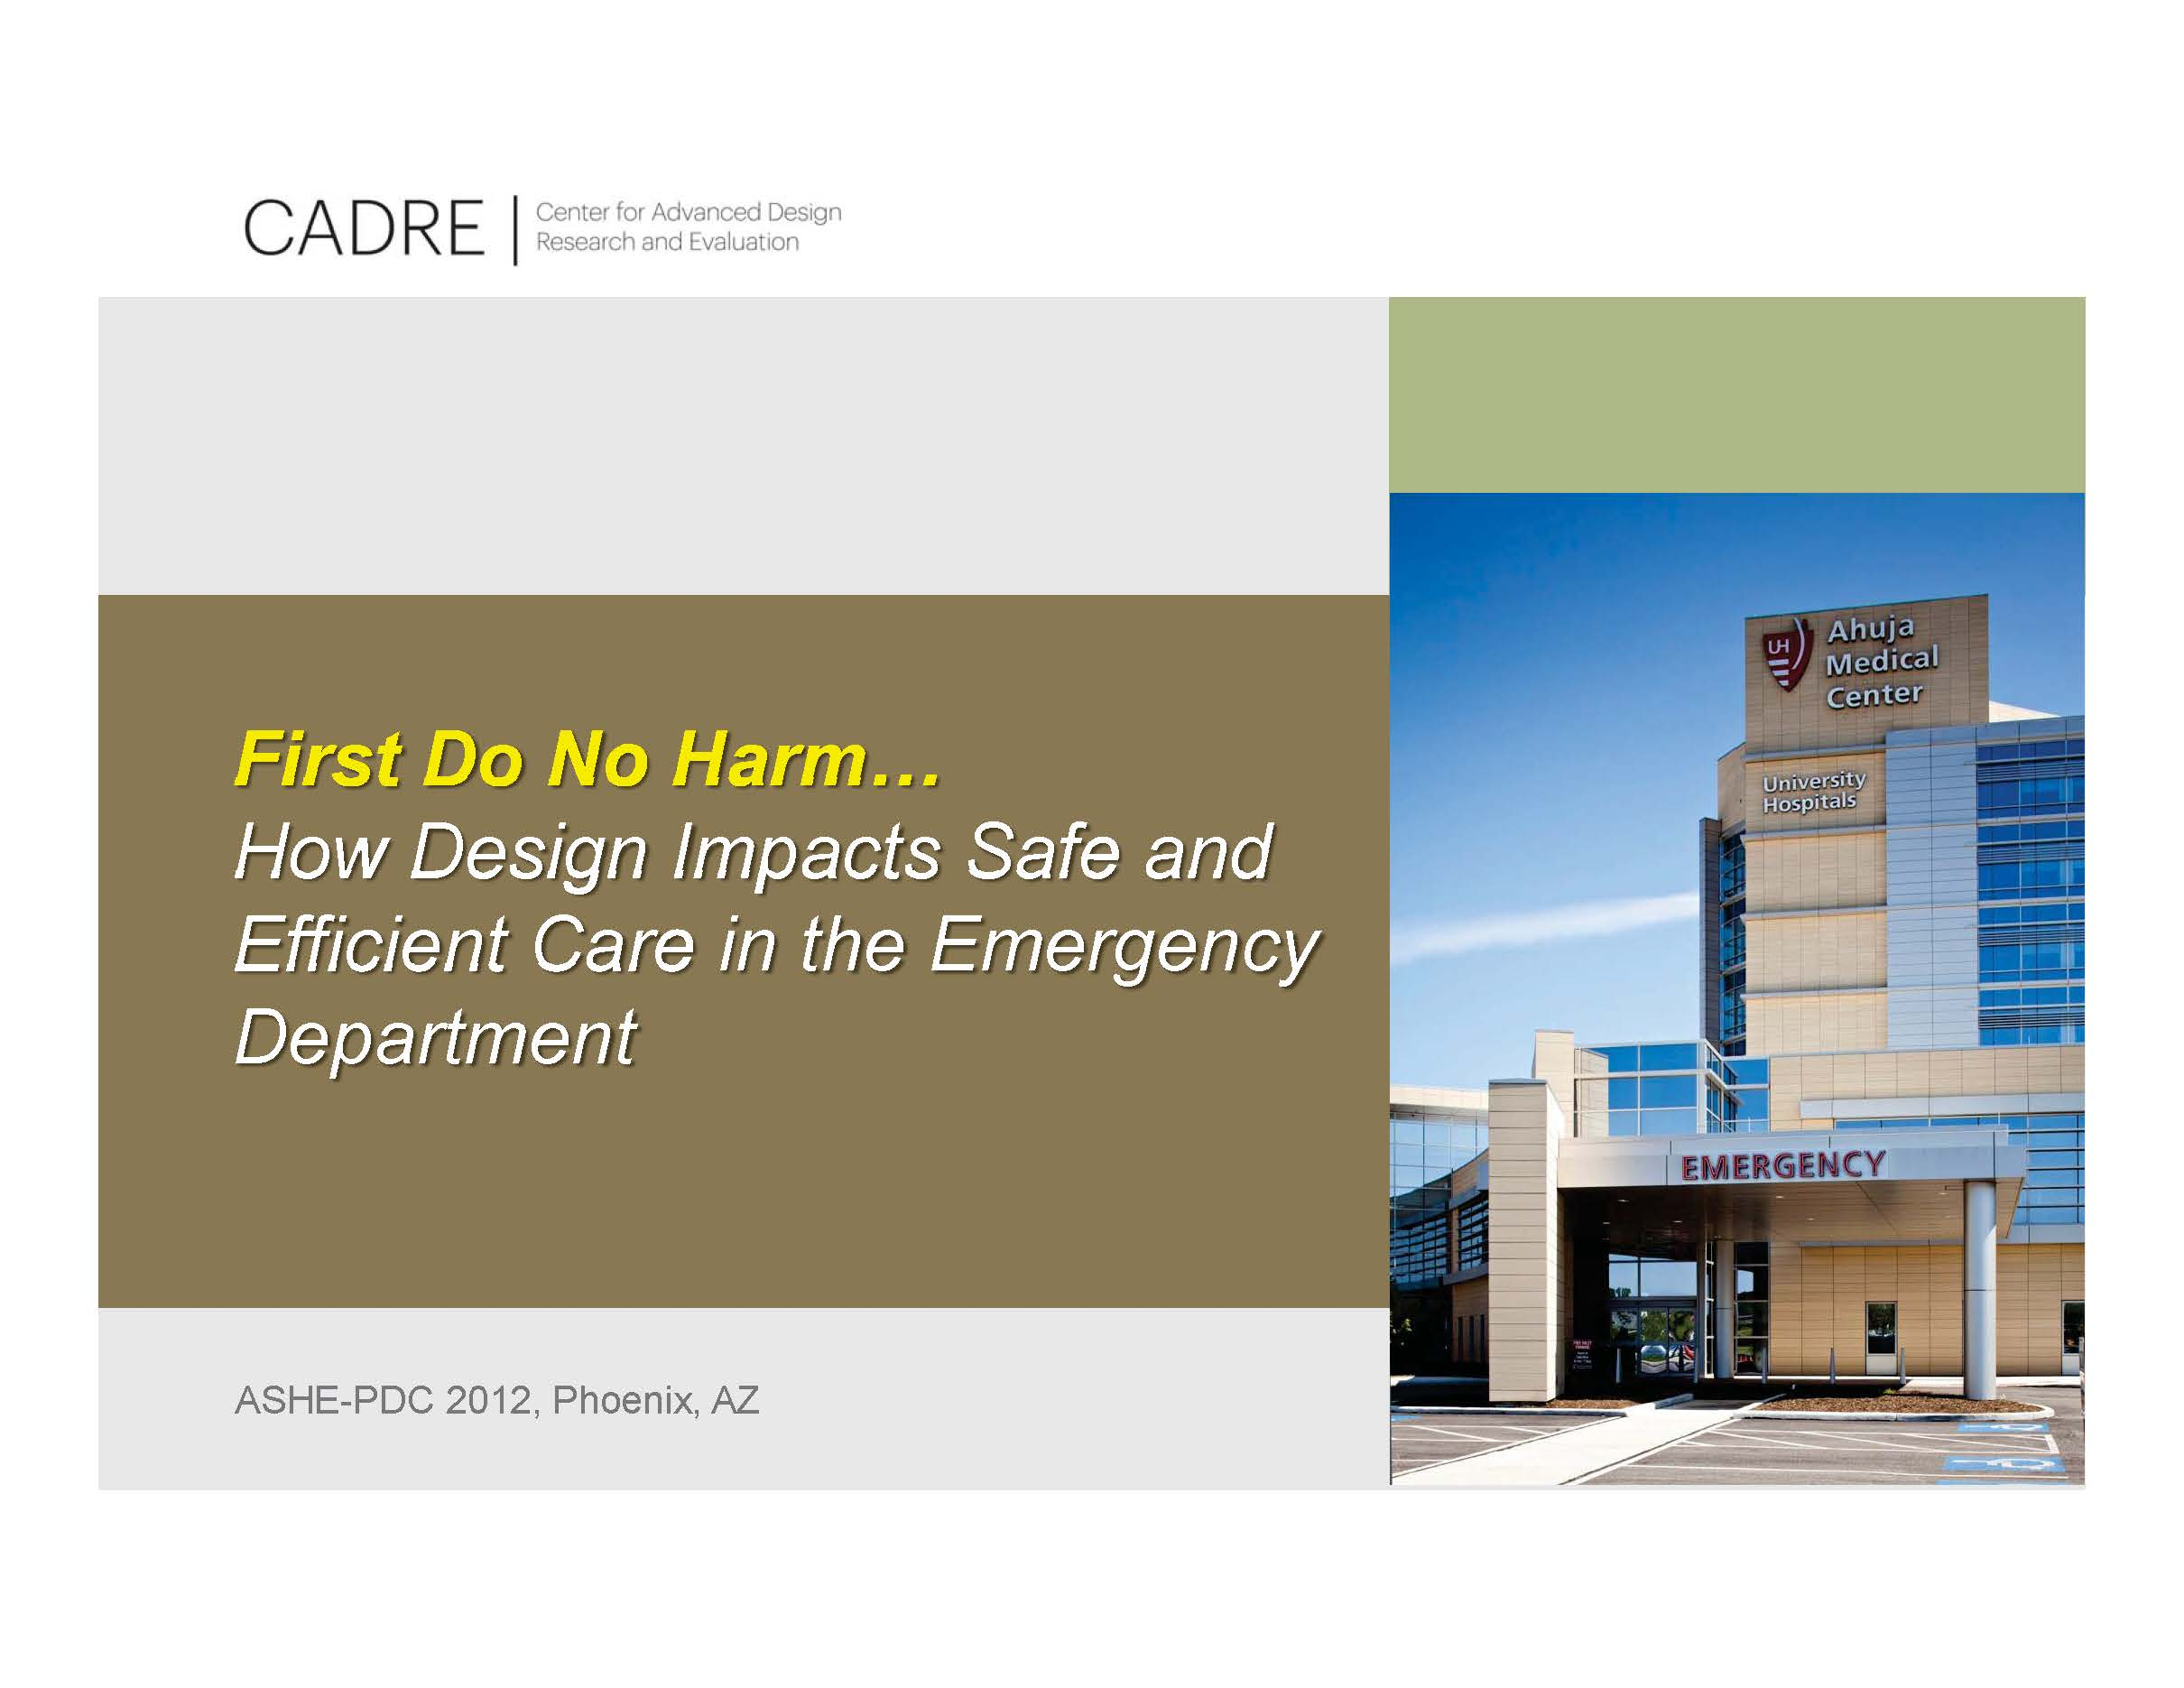 First Do No Harm…How Design Impacts Safe and Efficient Care in the Emergency Department    Thomas E. Harvey, Debajyoti Pati, and David Vincent   Healthcare Facility Planning  ,   Design, and Construction (PDC) Conference